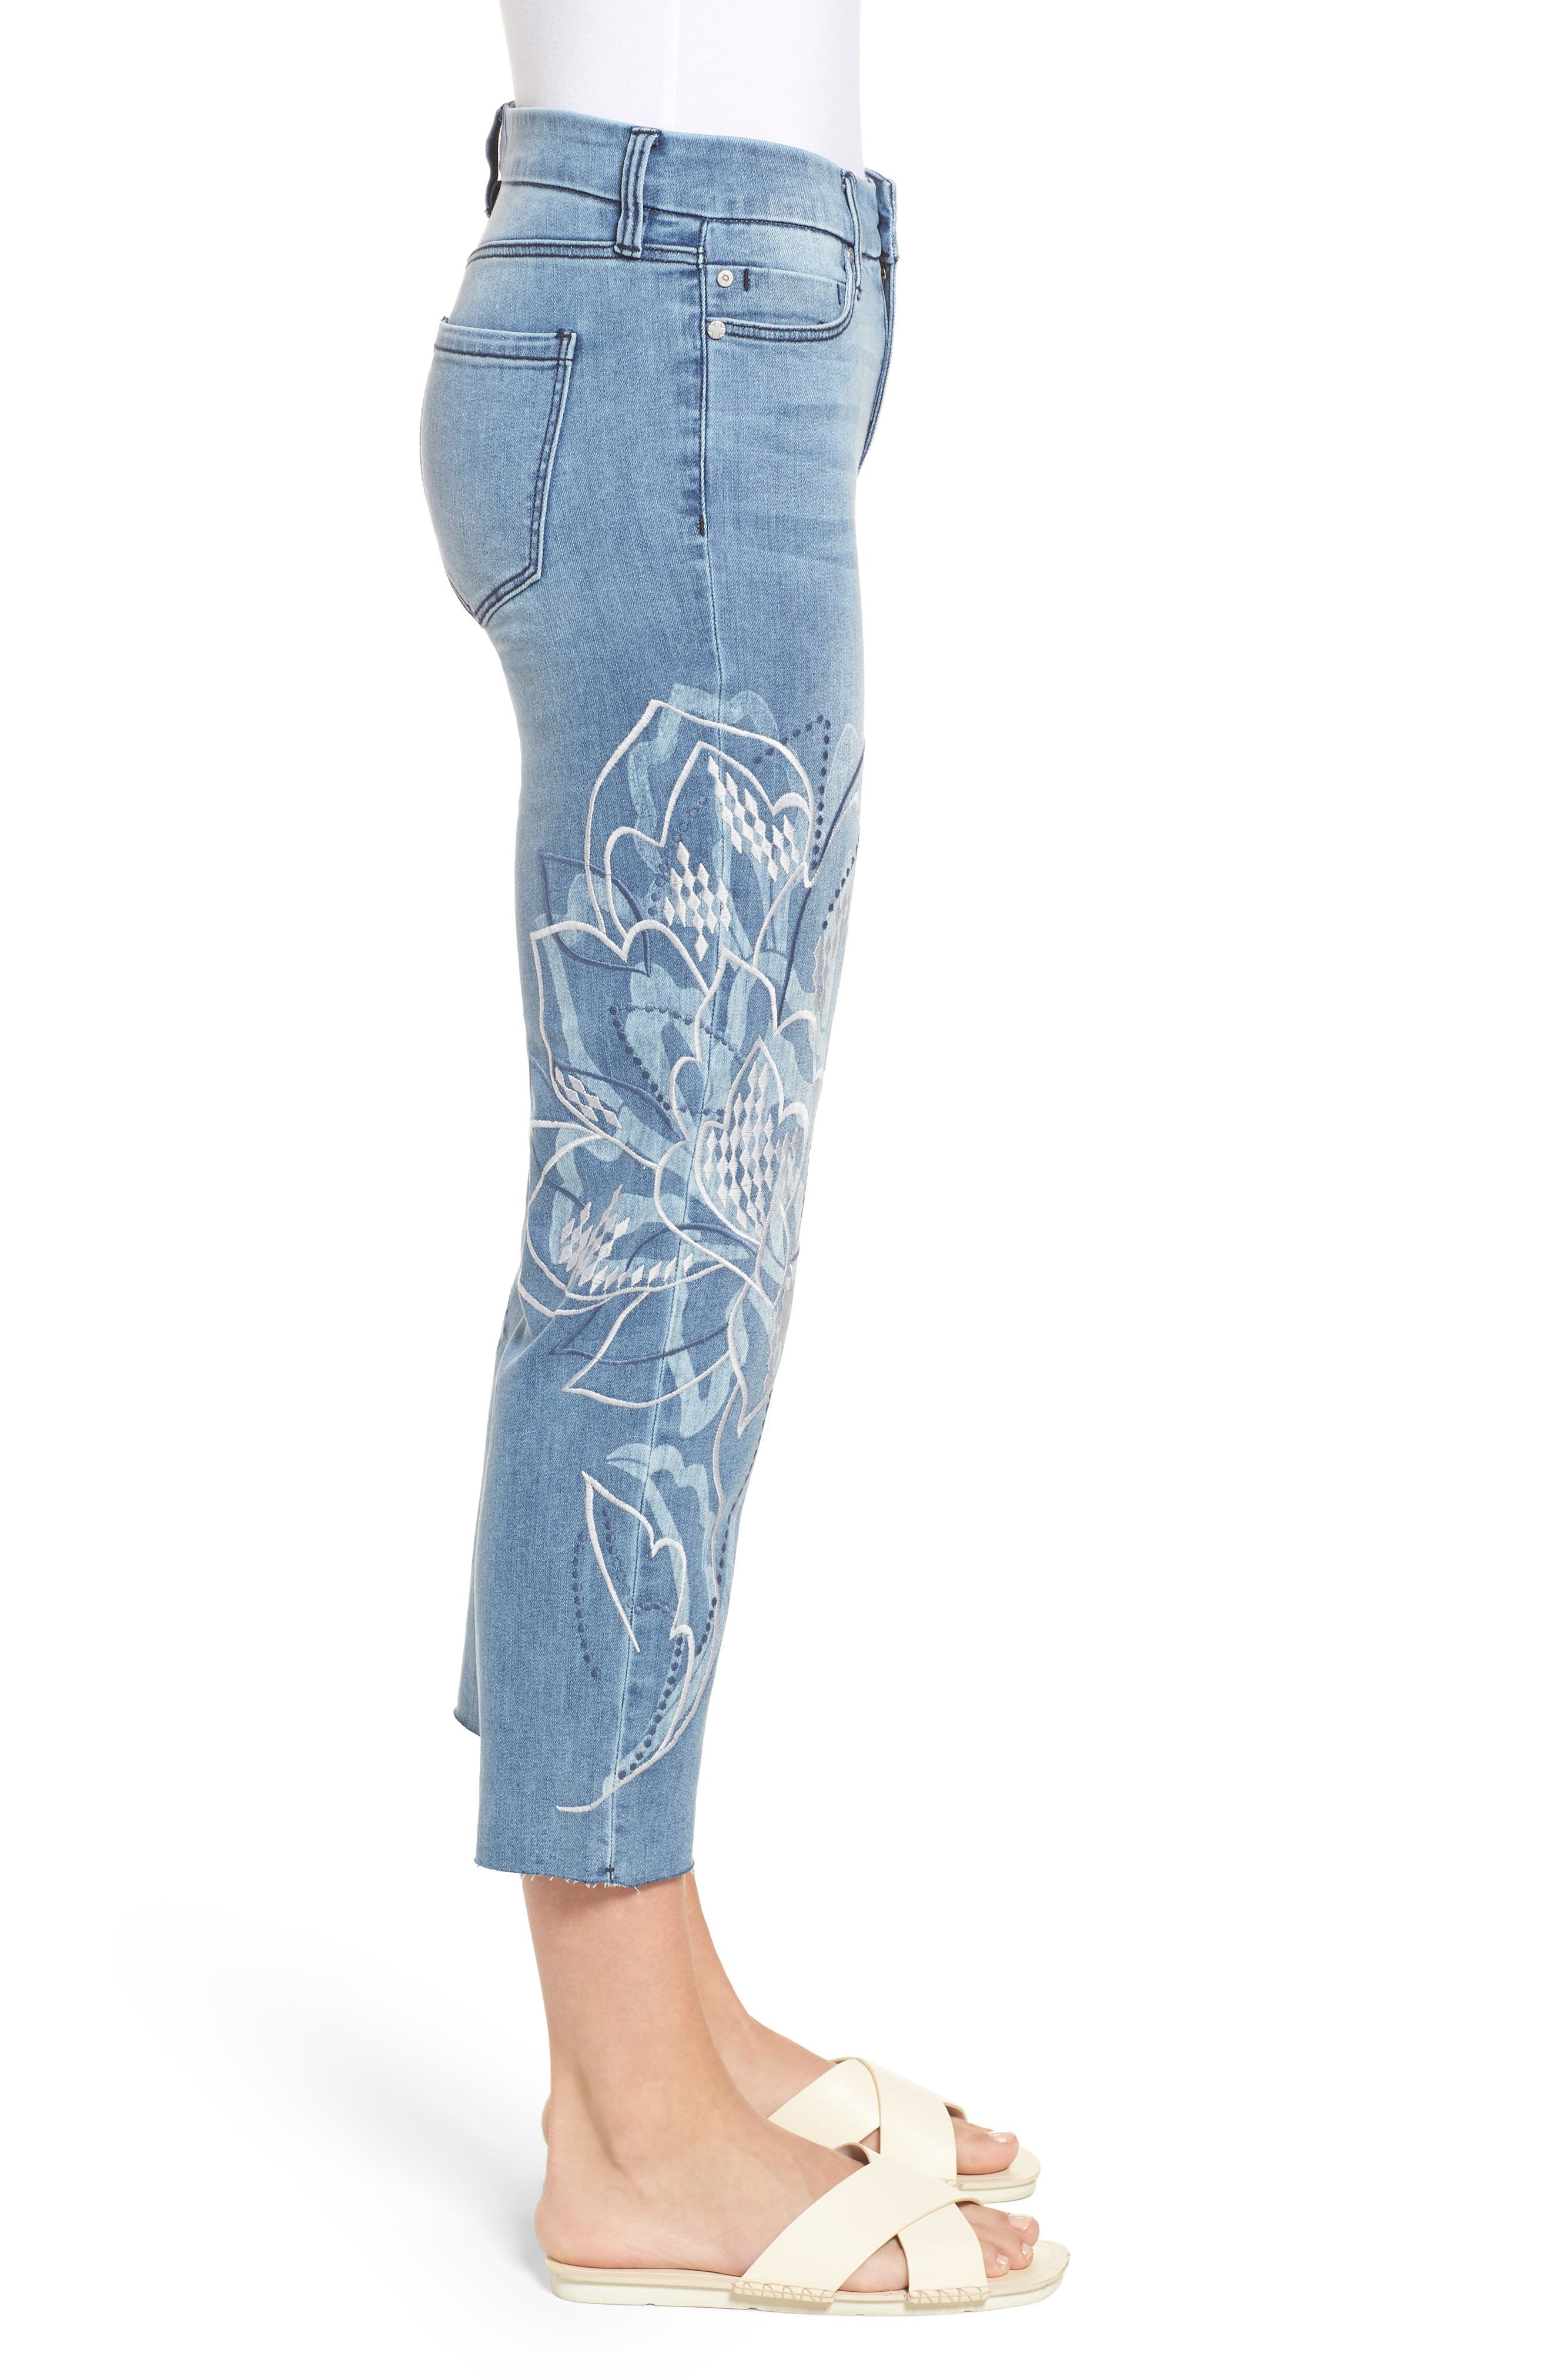 LVPL by Liverpool Carter Floral Embroidery Crop Jeans,                             Alternate thumbnail 4, color,                             Devonshire Wash